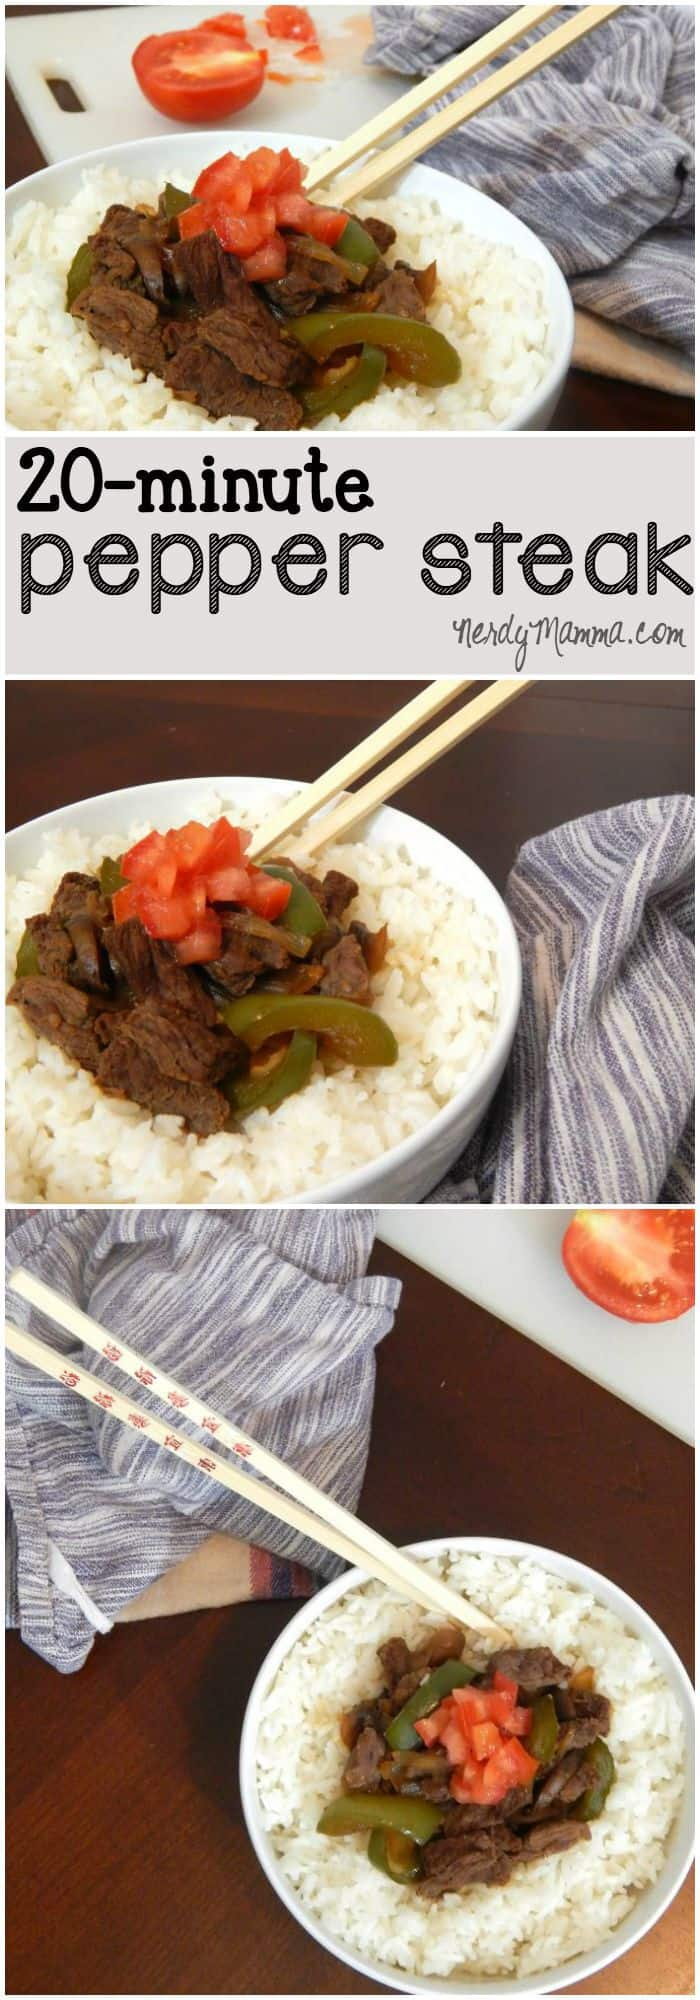 When I need a fast, easy dinner, I make this fast pepper steak. It tastes just like buffet pepper steak and my kids love it.